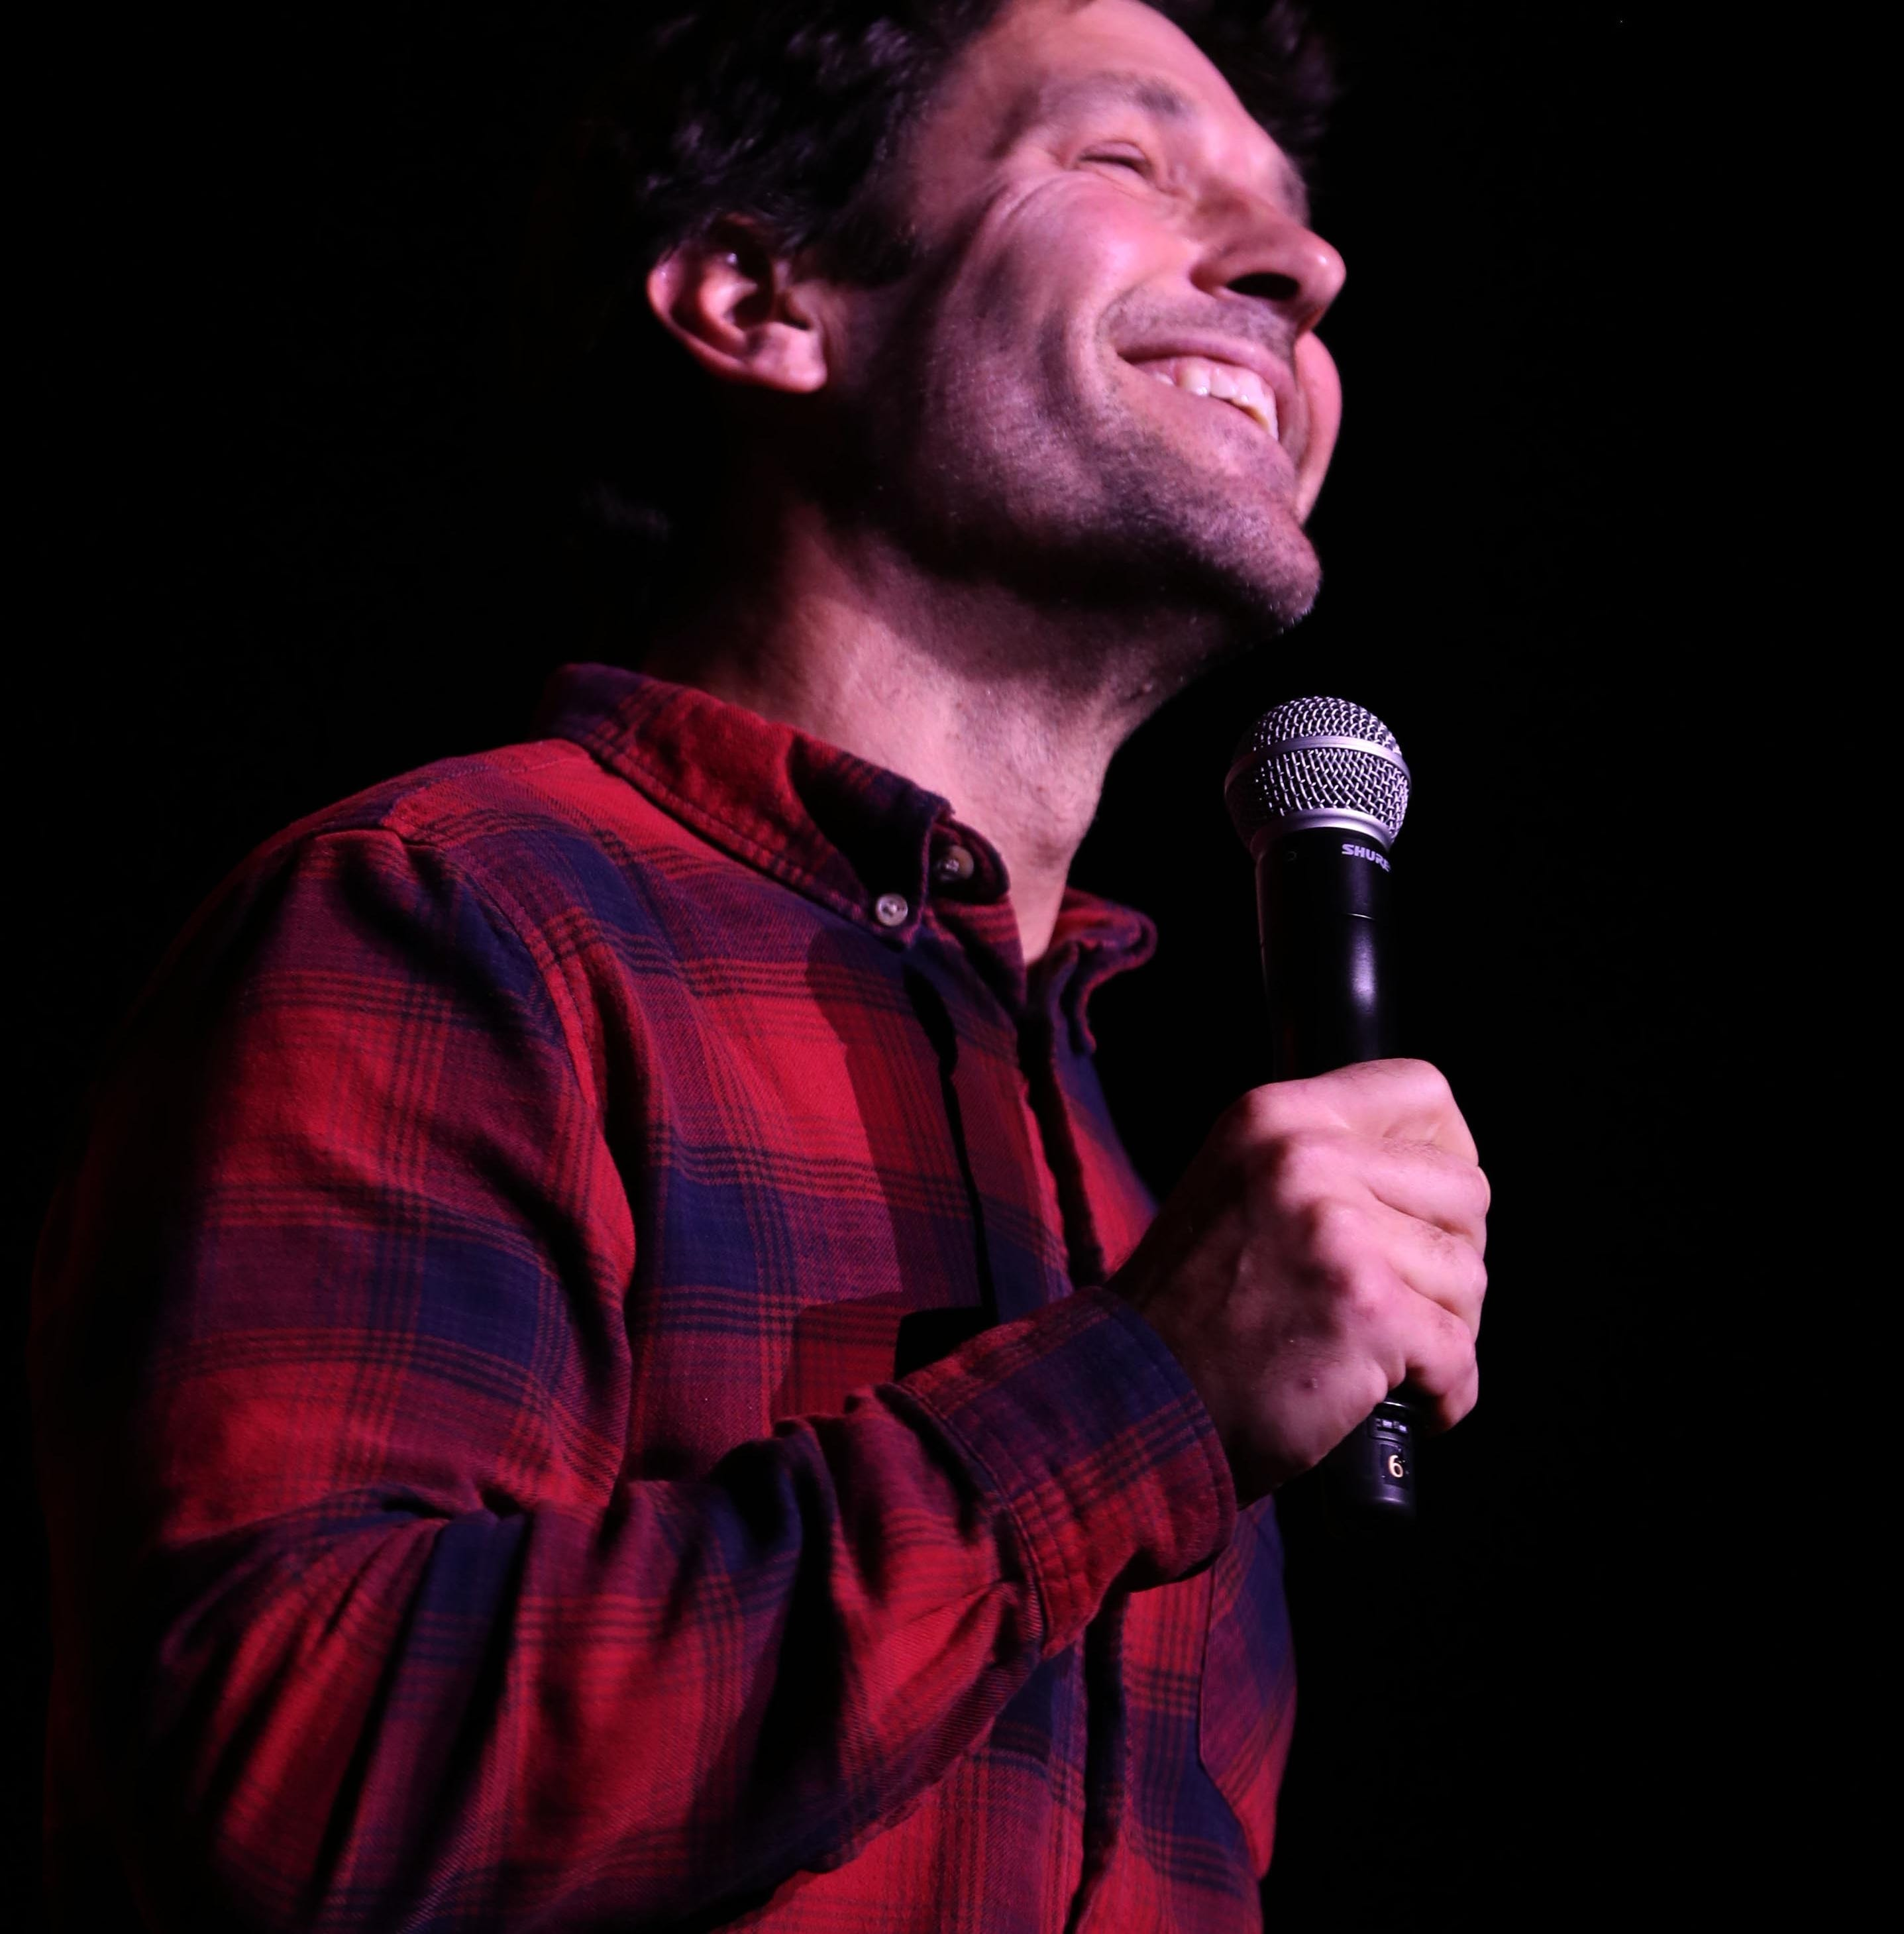 Actor Paul Rudd, a Dutchess County resident speaks during Hudson Valley Votes, a concert and rally held at the Ulster Performing Arts Center in Kingston Oct. 20, 2018. Performers, activists, and local candidates for office participated in the event.